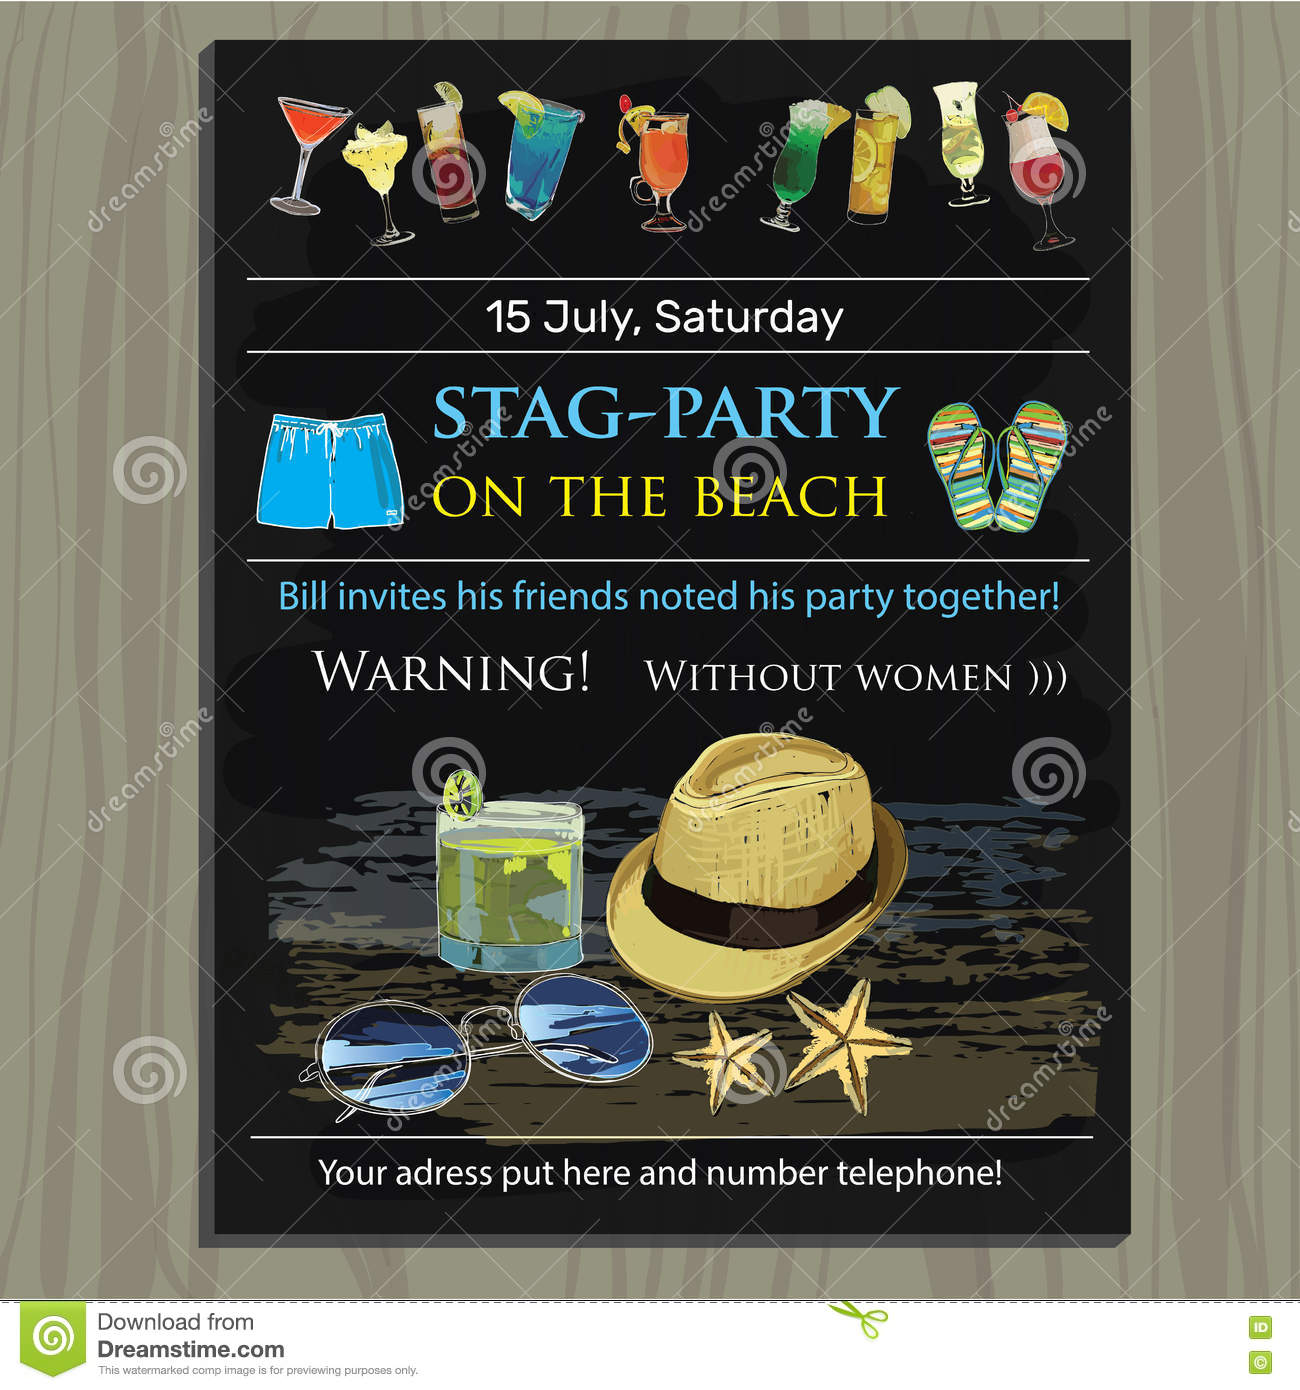 Stagparty Invite On The Beach Holiday Vacation Invitation Ca – Stag Party Invitation